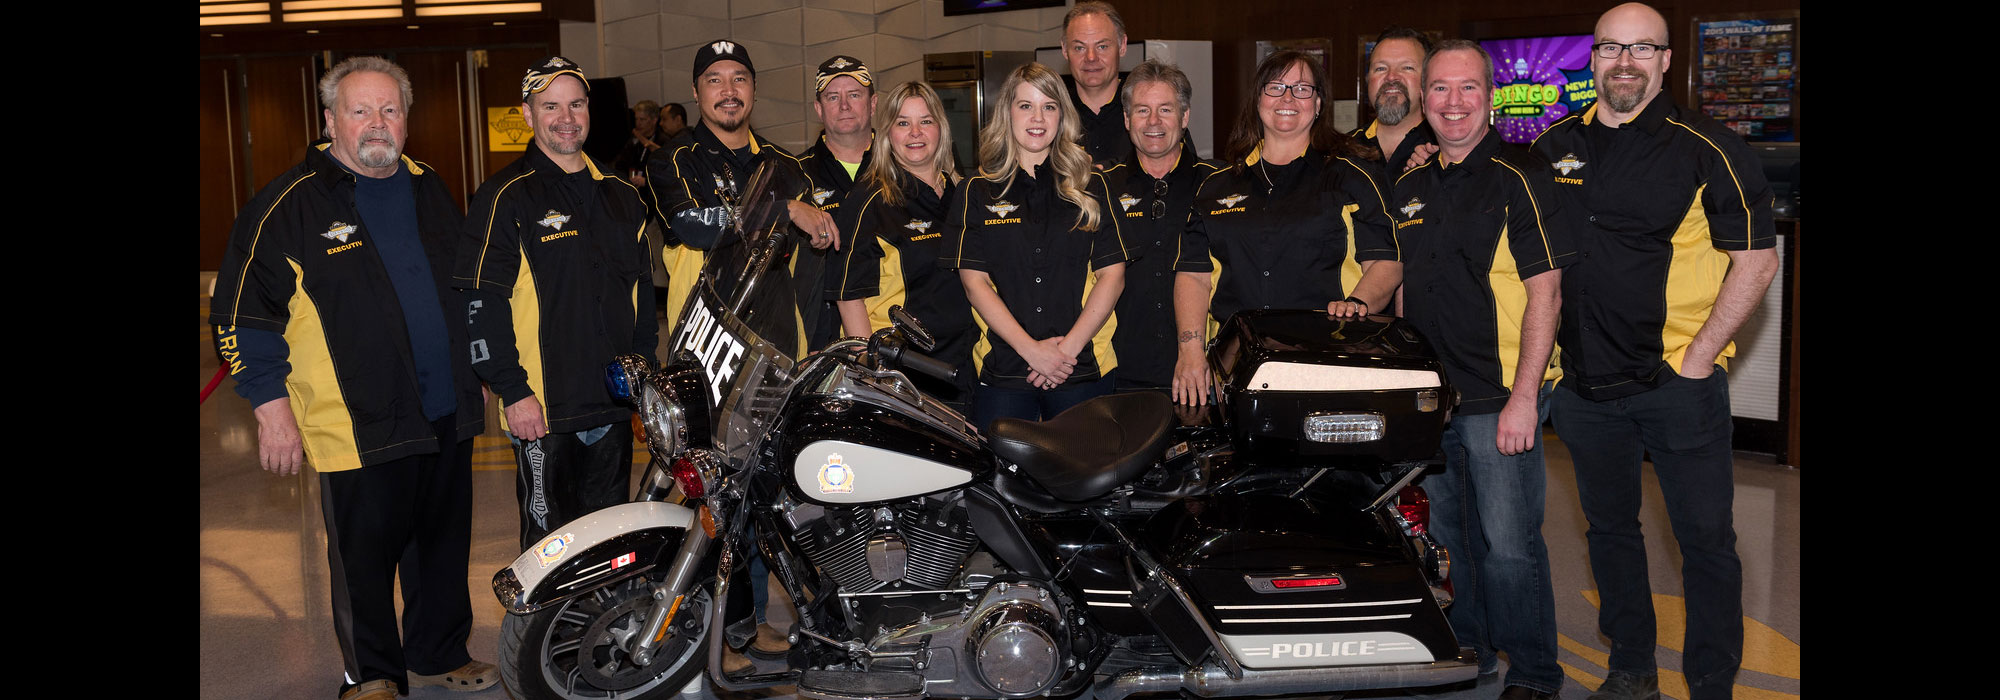 Thank you 2017 Telus Manitoba Motorcycle Ride organizing committee! Good luck on Ride Day - May 27!